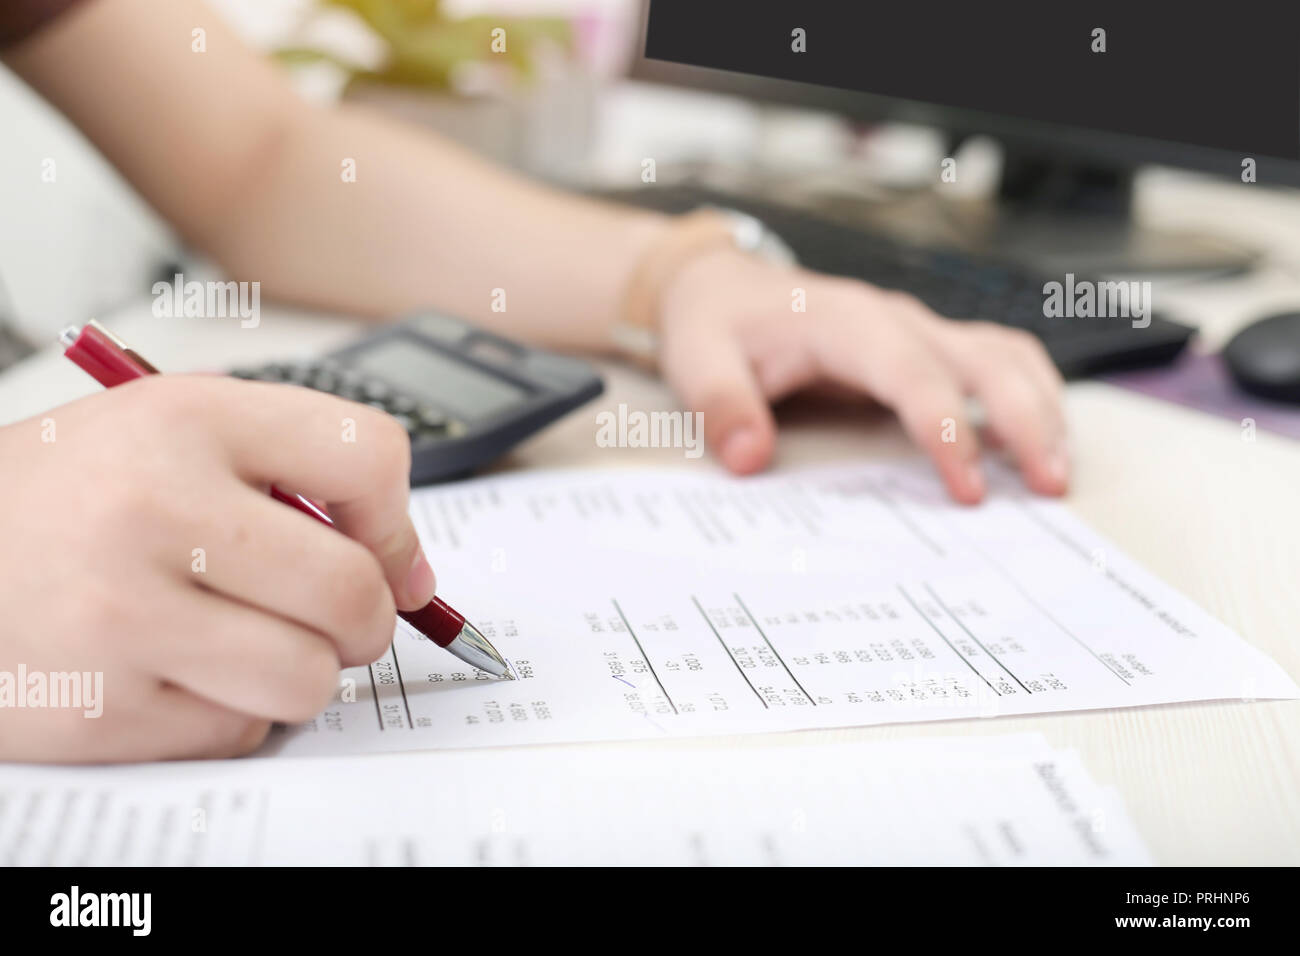 man is checking balance sheet with pen stock photo 221051774 alamy